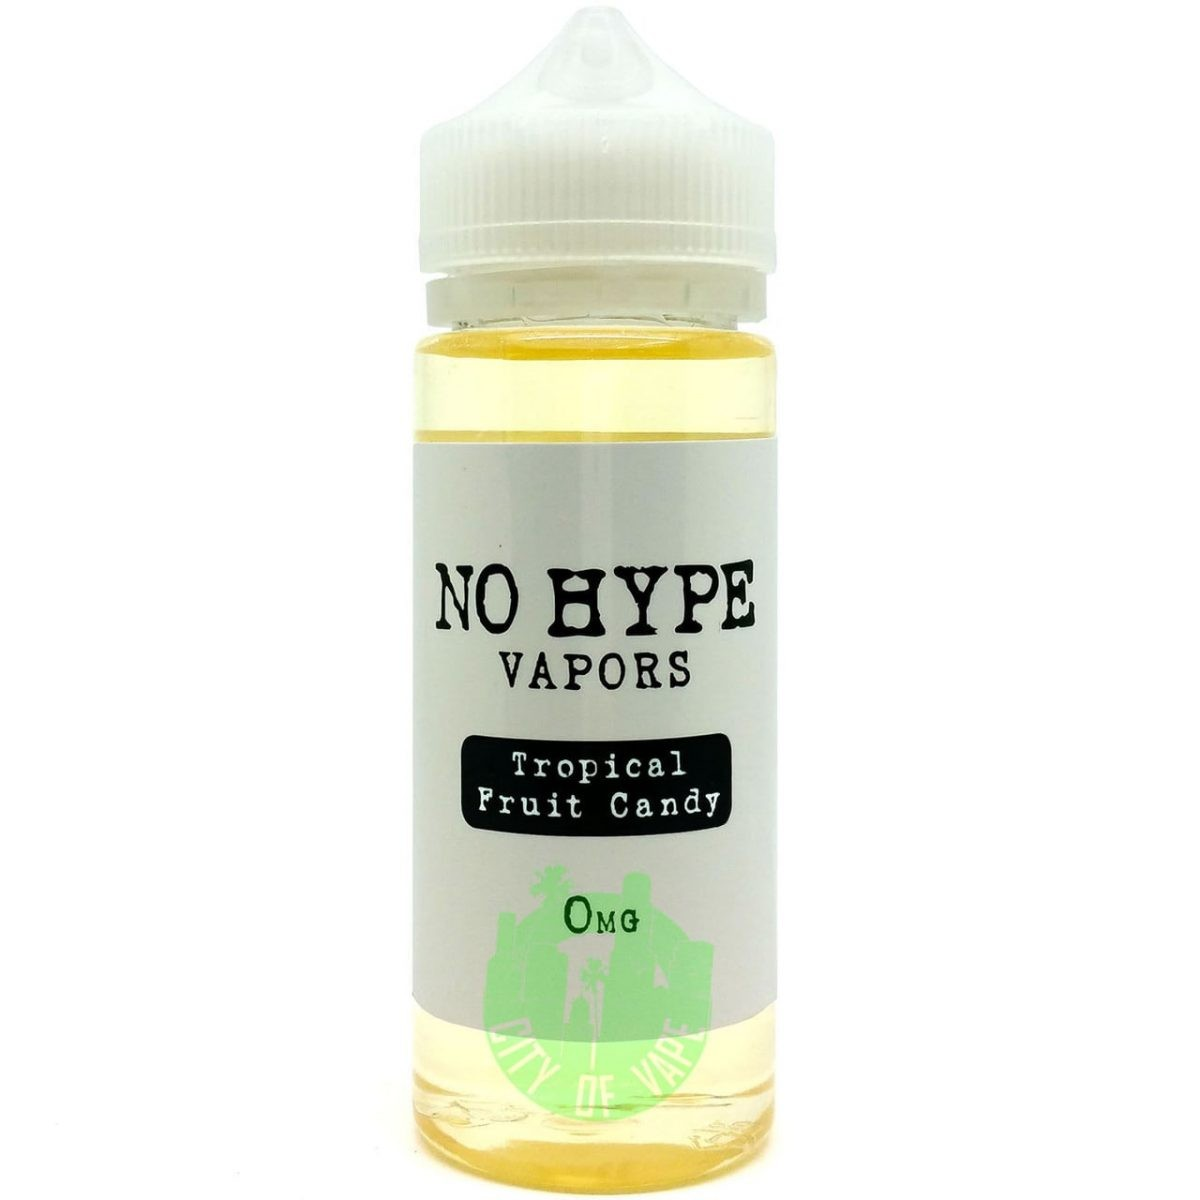 TROPICAL FRUIT CANDY BY NO HYPE VAPORS 120ML